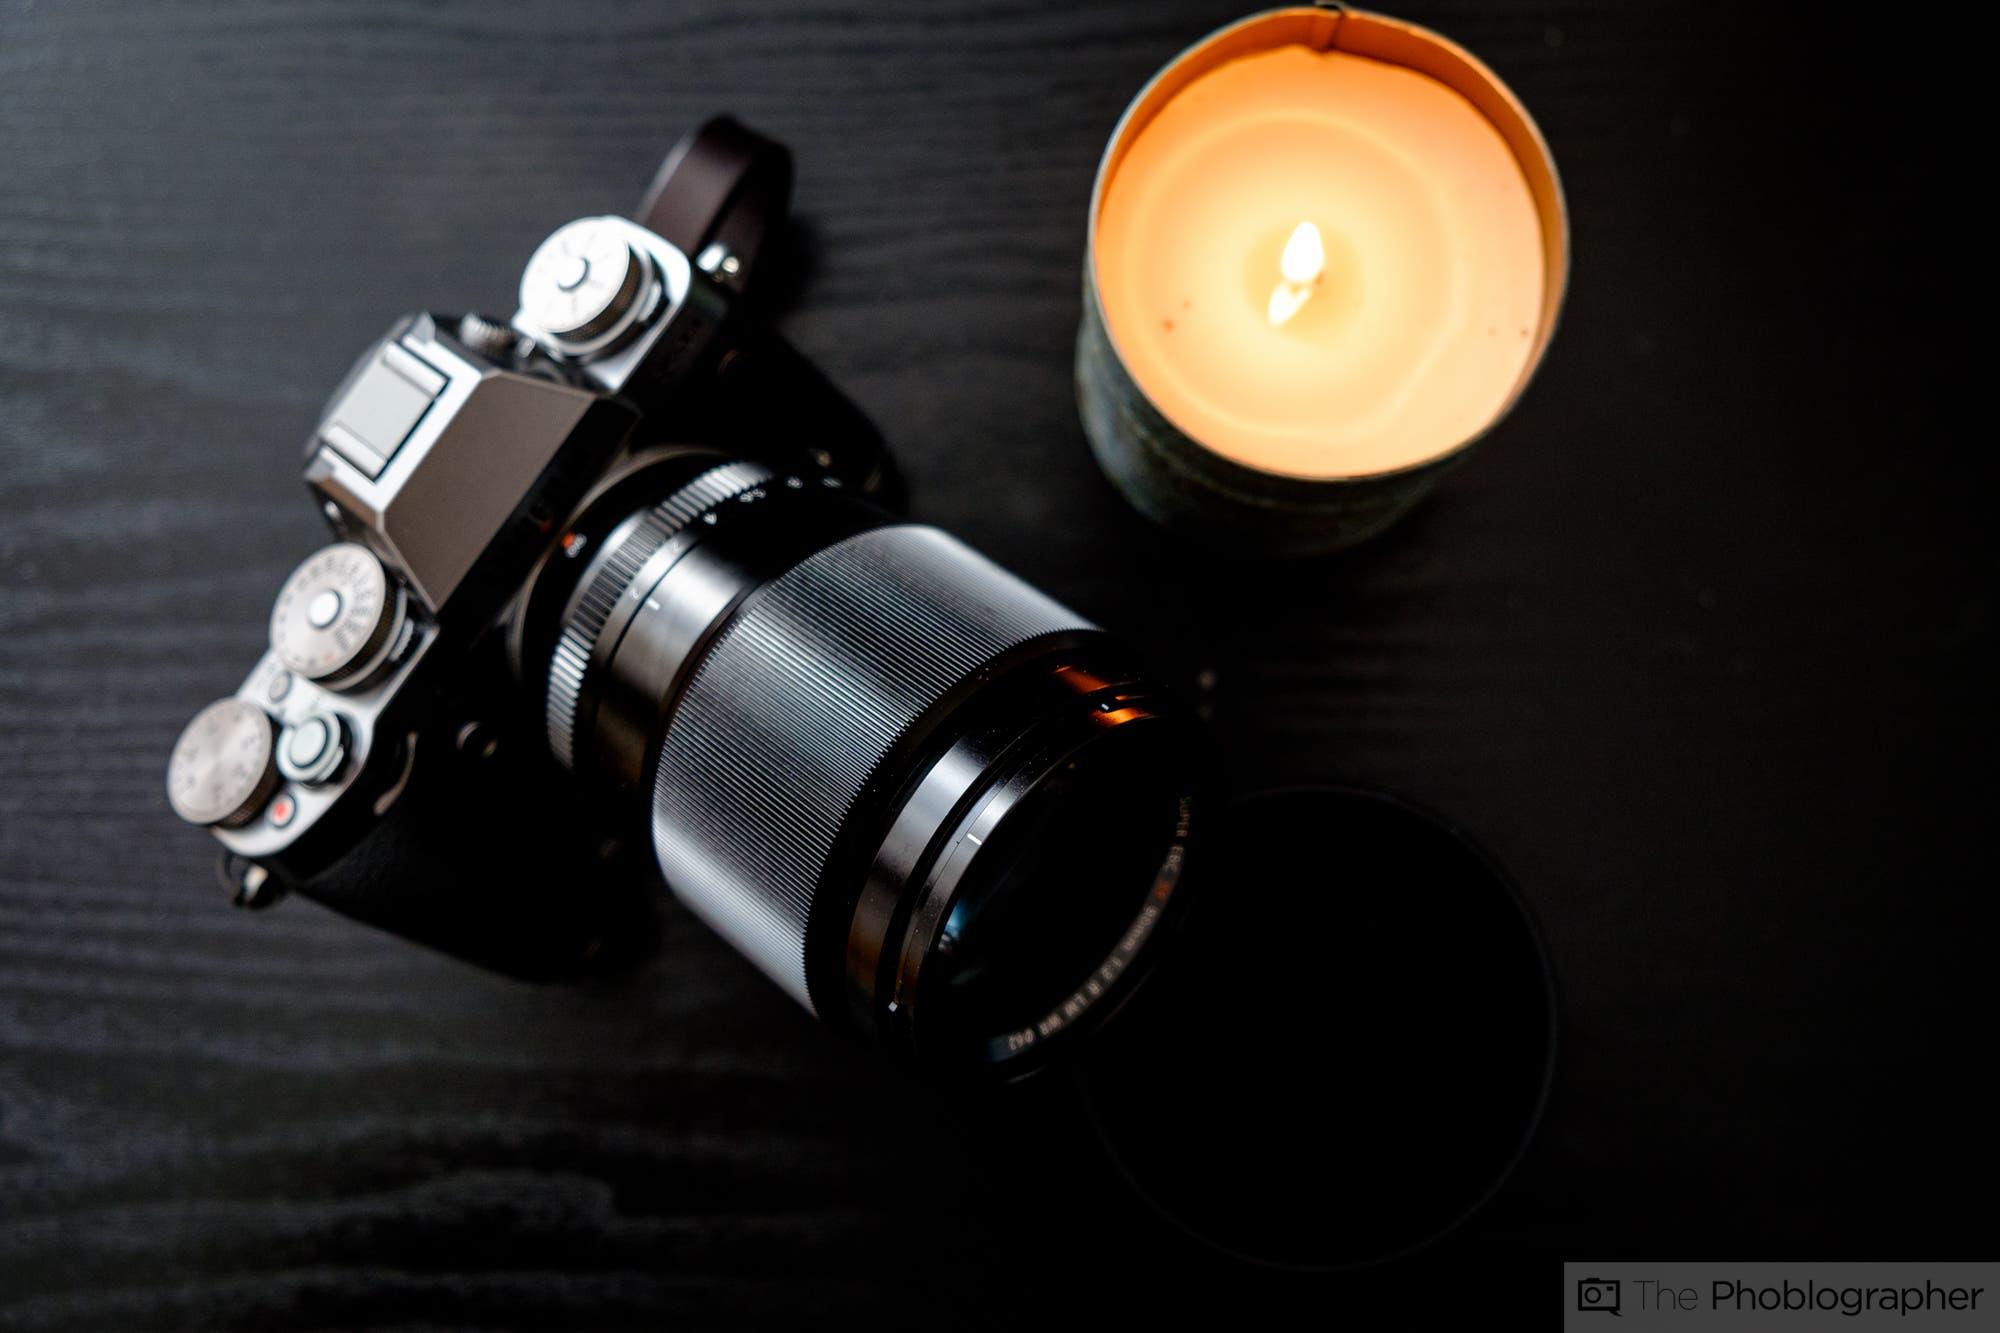 We've Updated Our Comprehensive Guide to Fujifilm X Mount Lenses